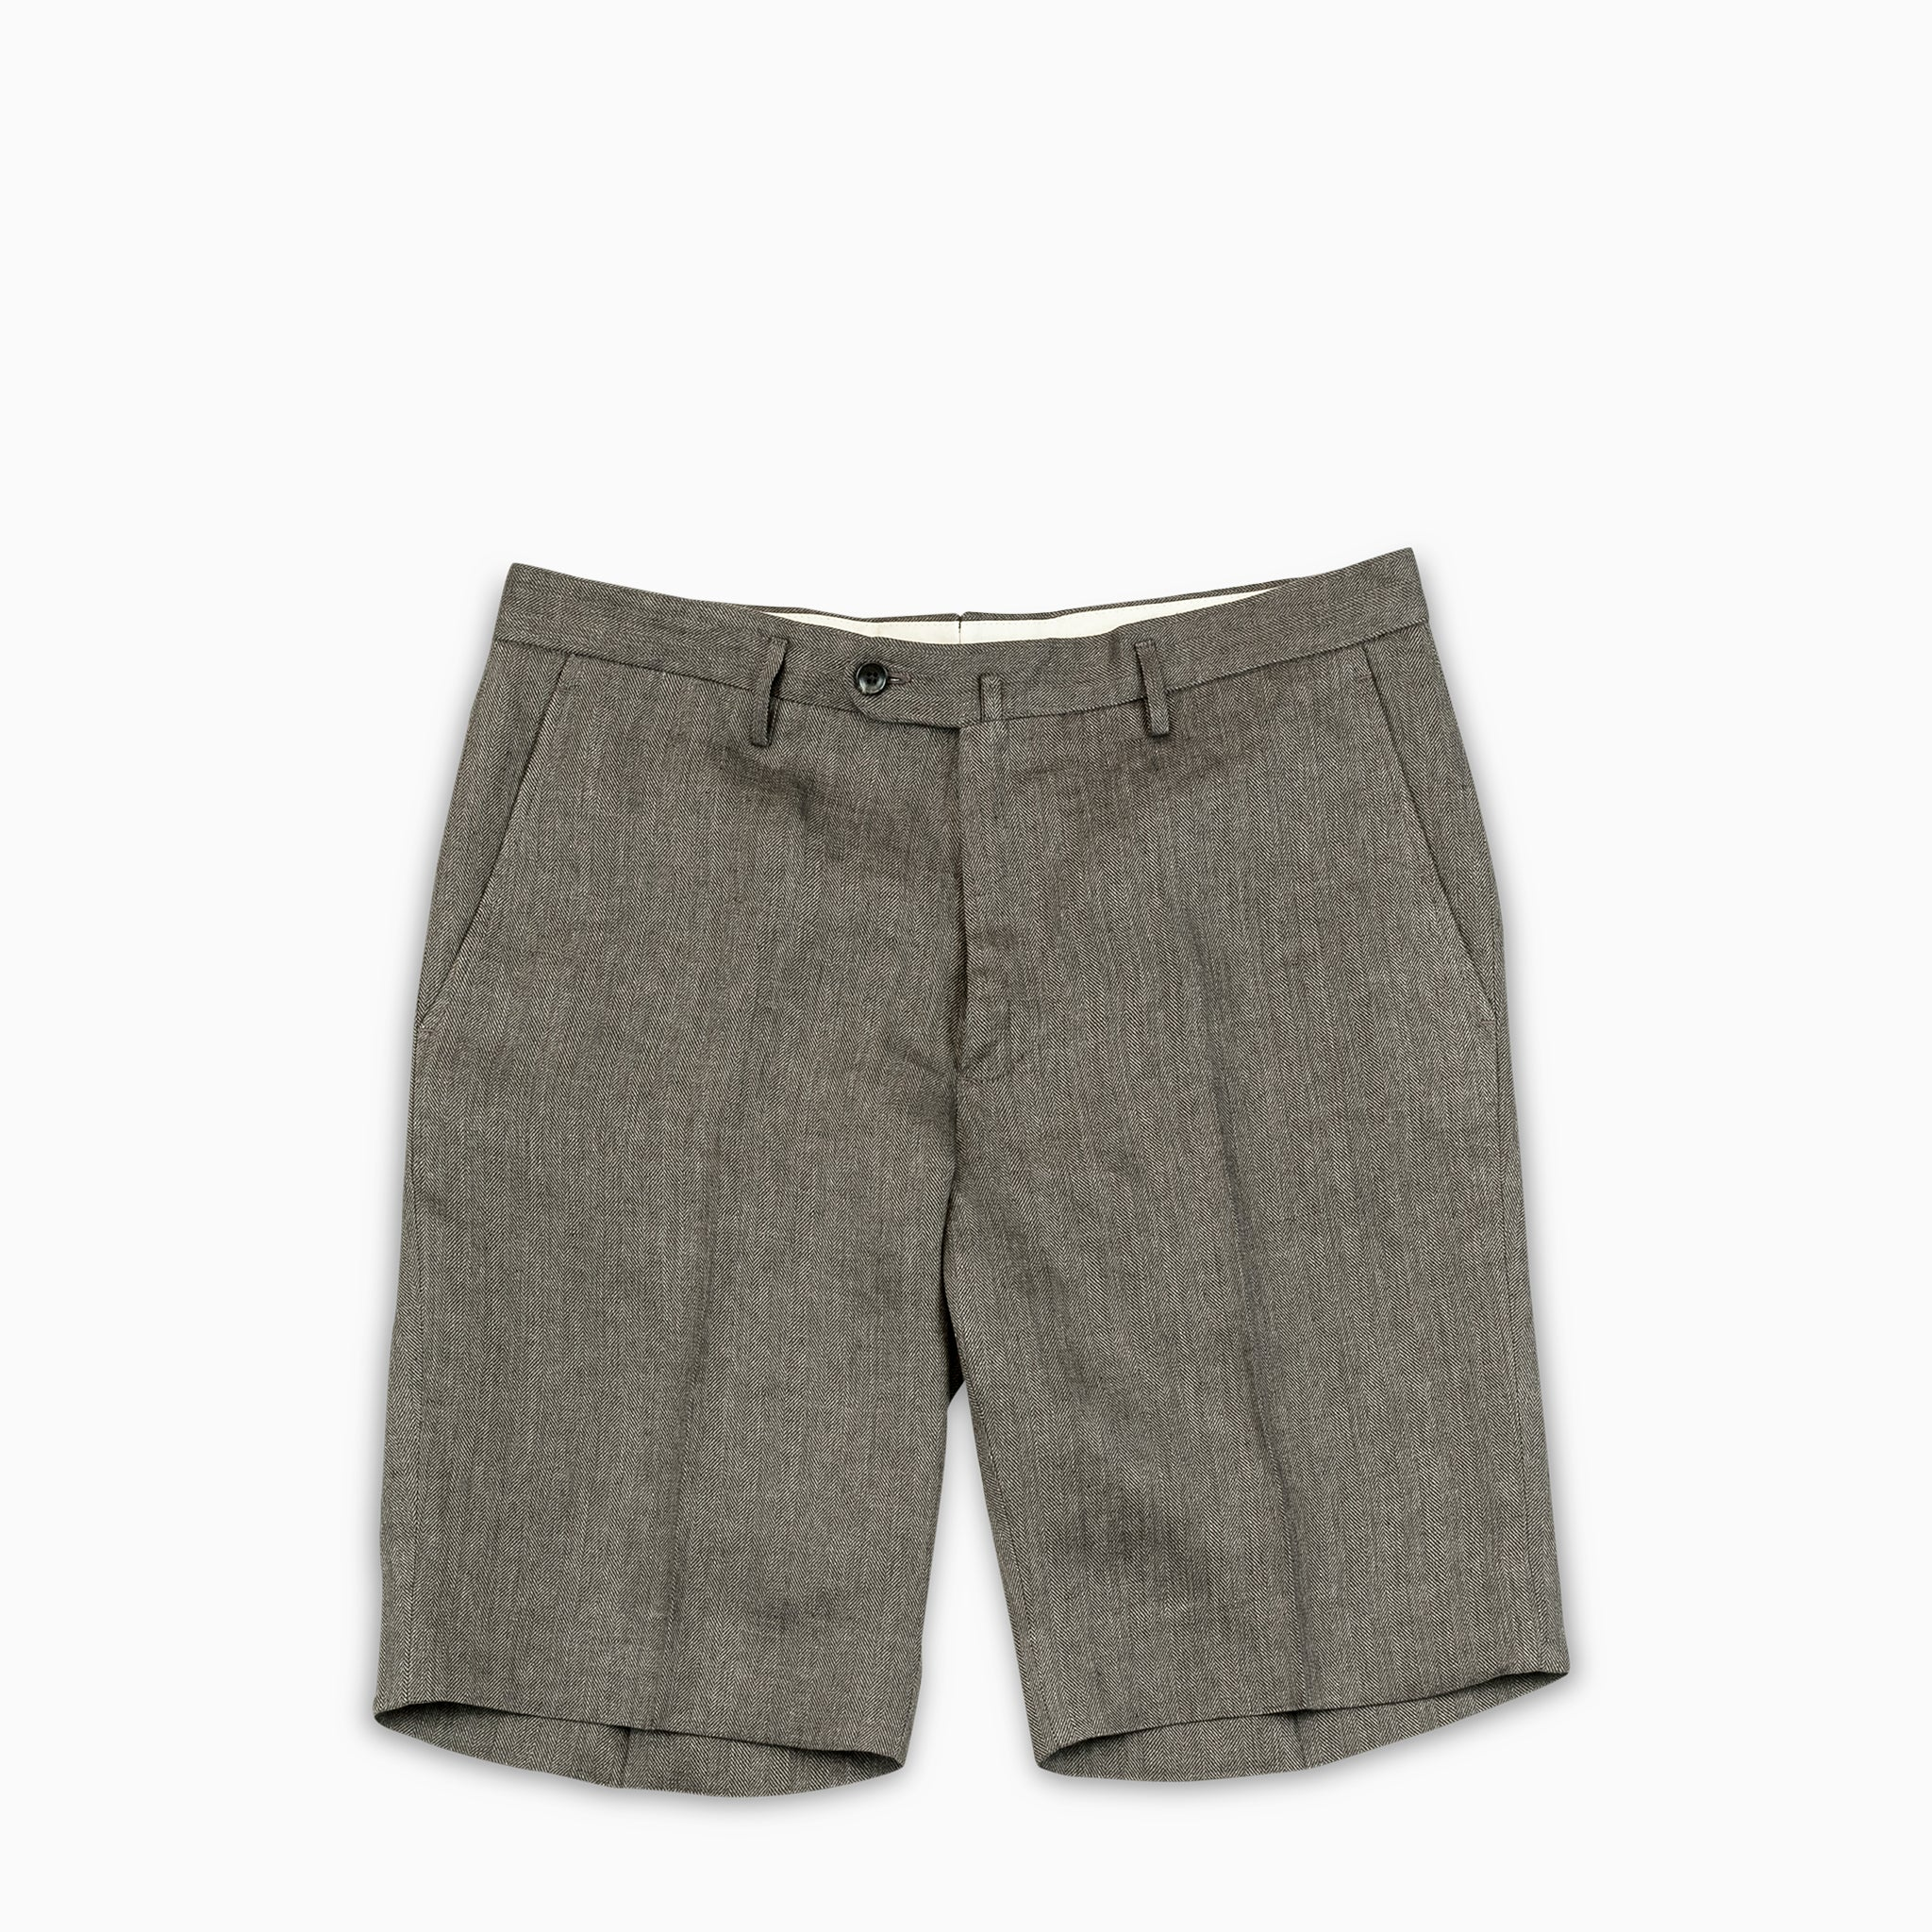 Bazile bermuda shorts in herringbone linen (mountain brown)